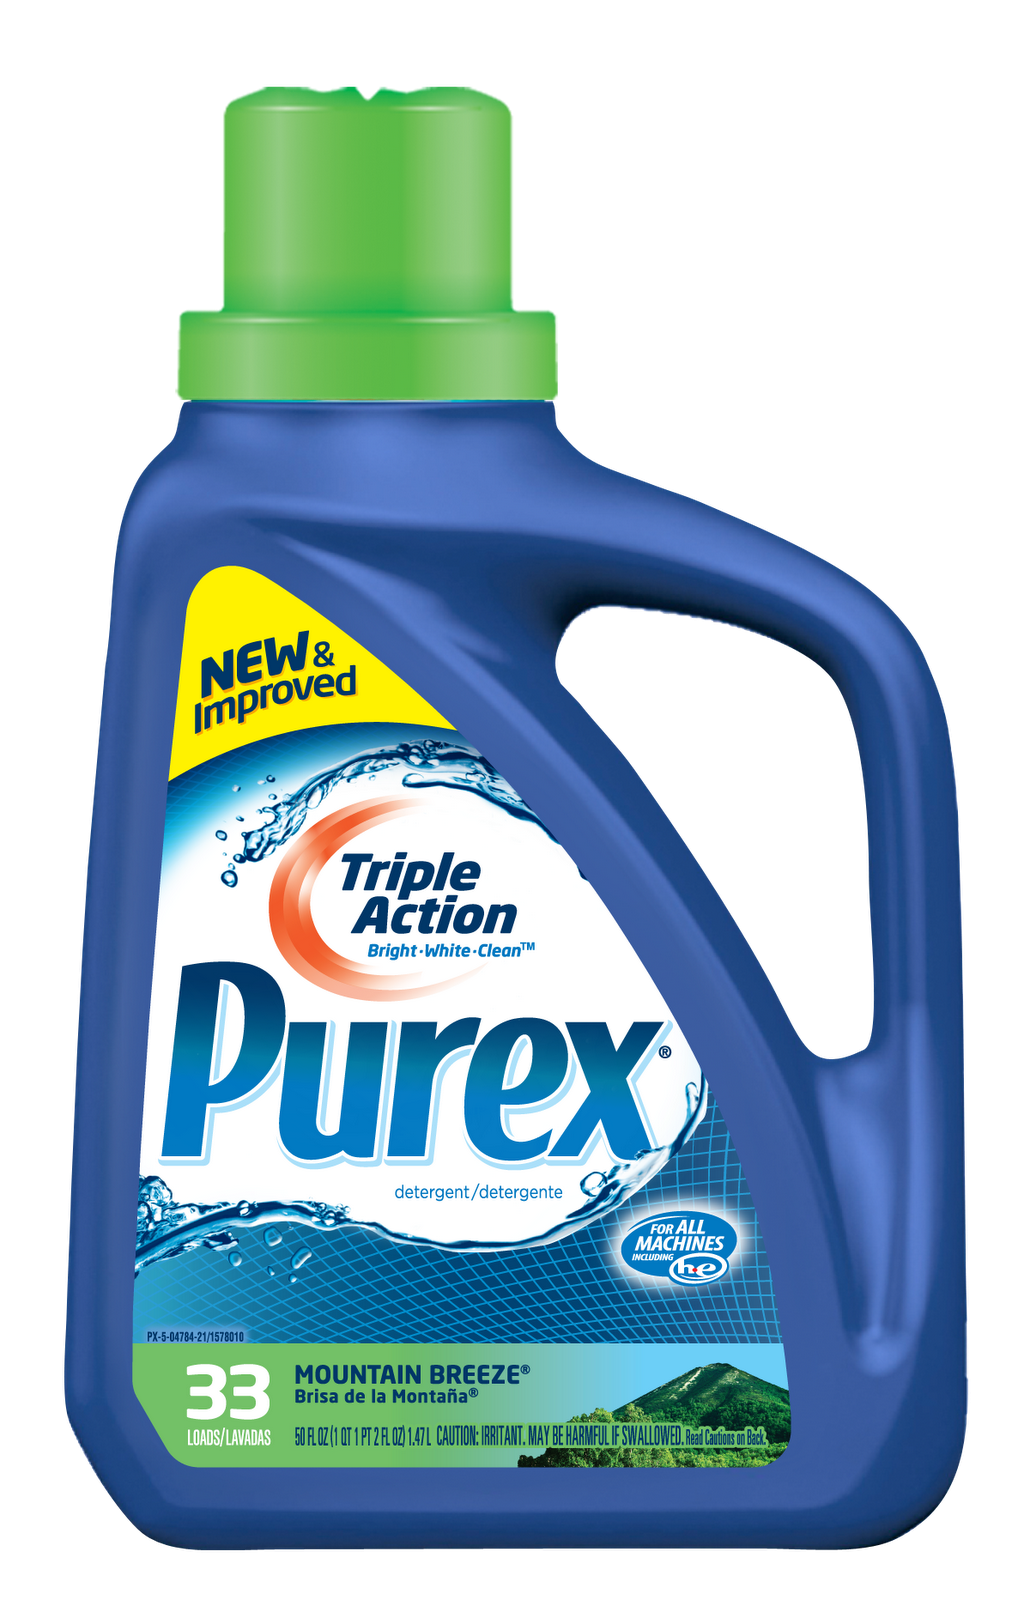 PUR *HOT* Purex Laundry Detergent Only $2 (No Coupons Needed!)